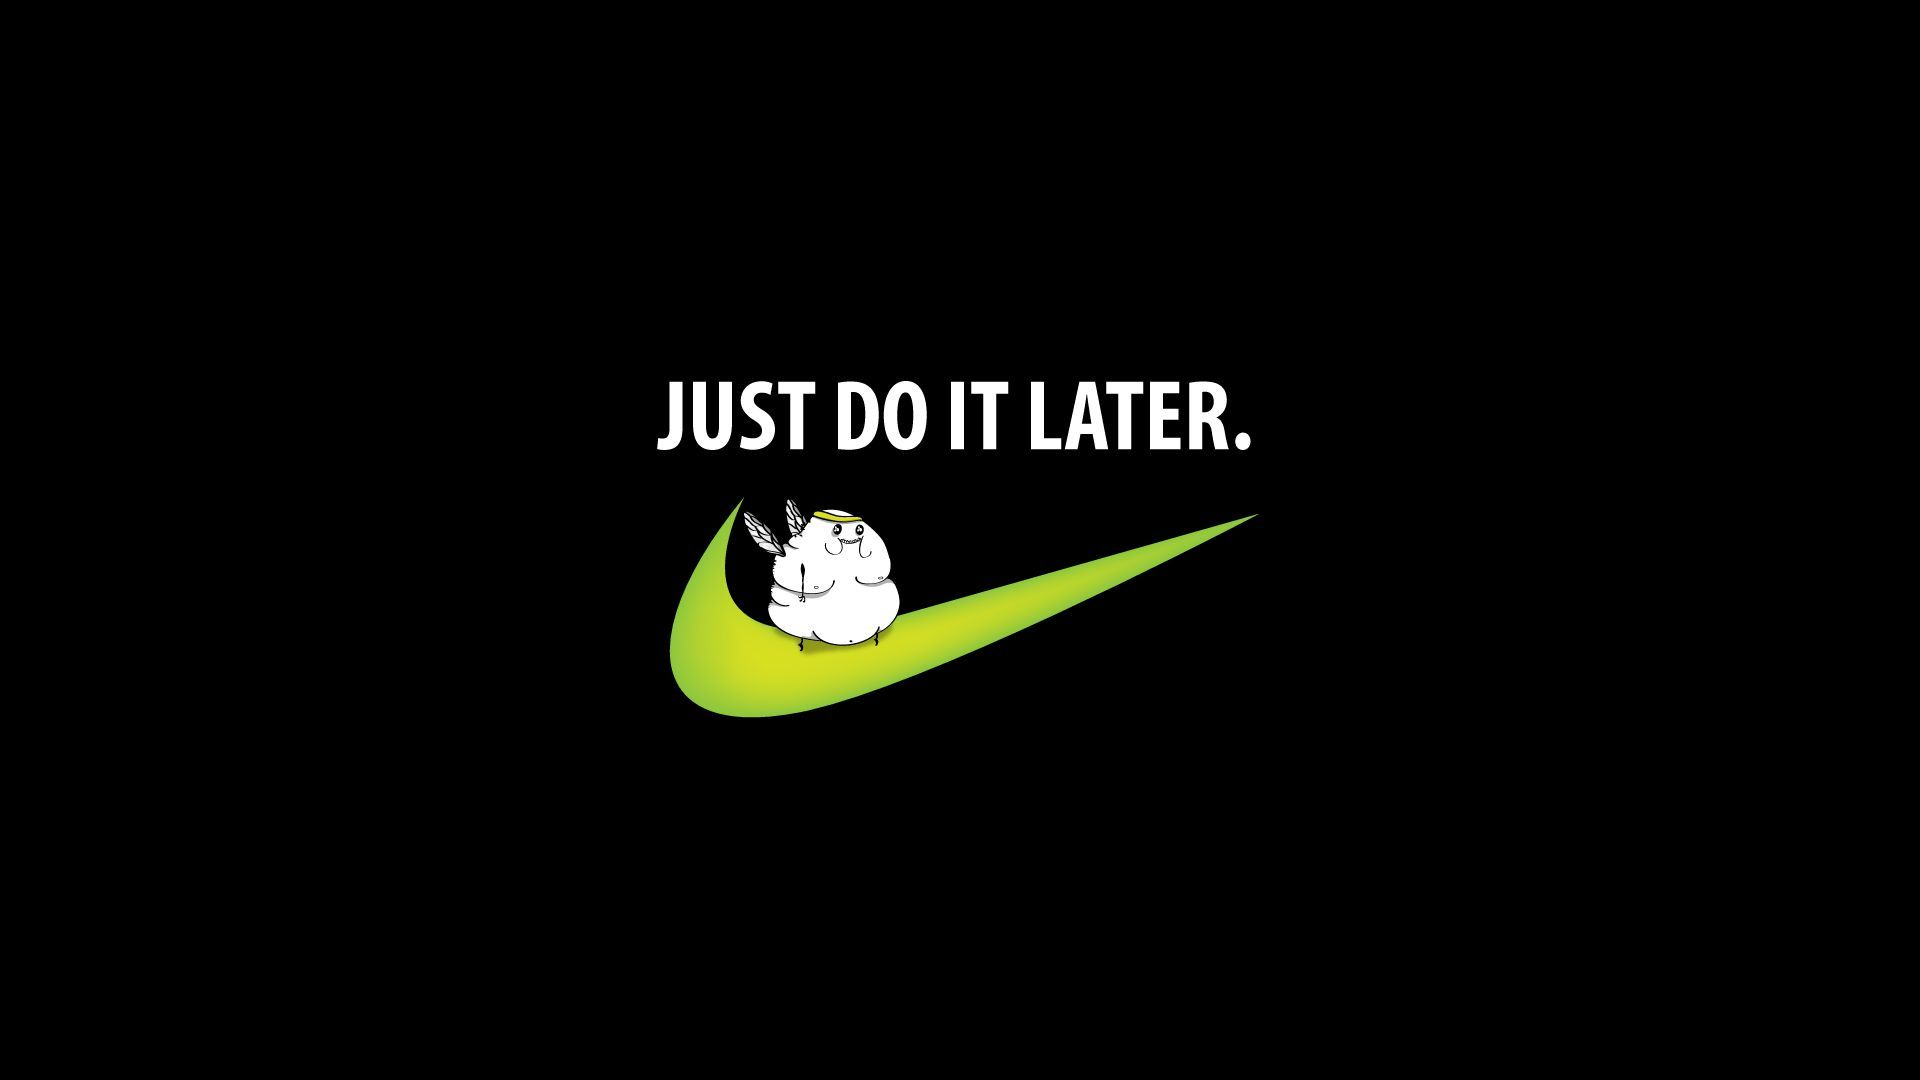 Funny Nike Wallpapers 1920 1080 High Definition Wallpaper Background Wallpapers